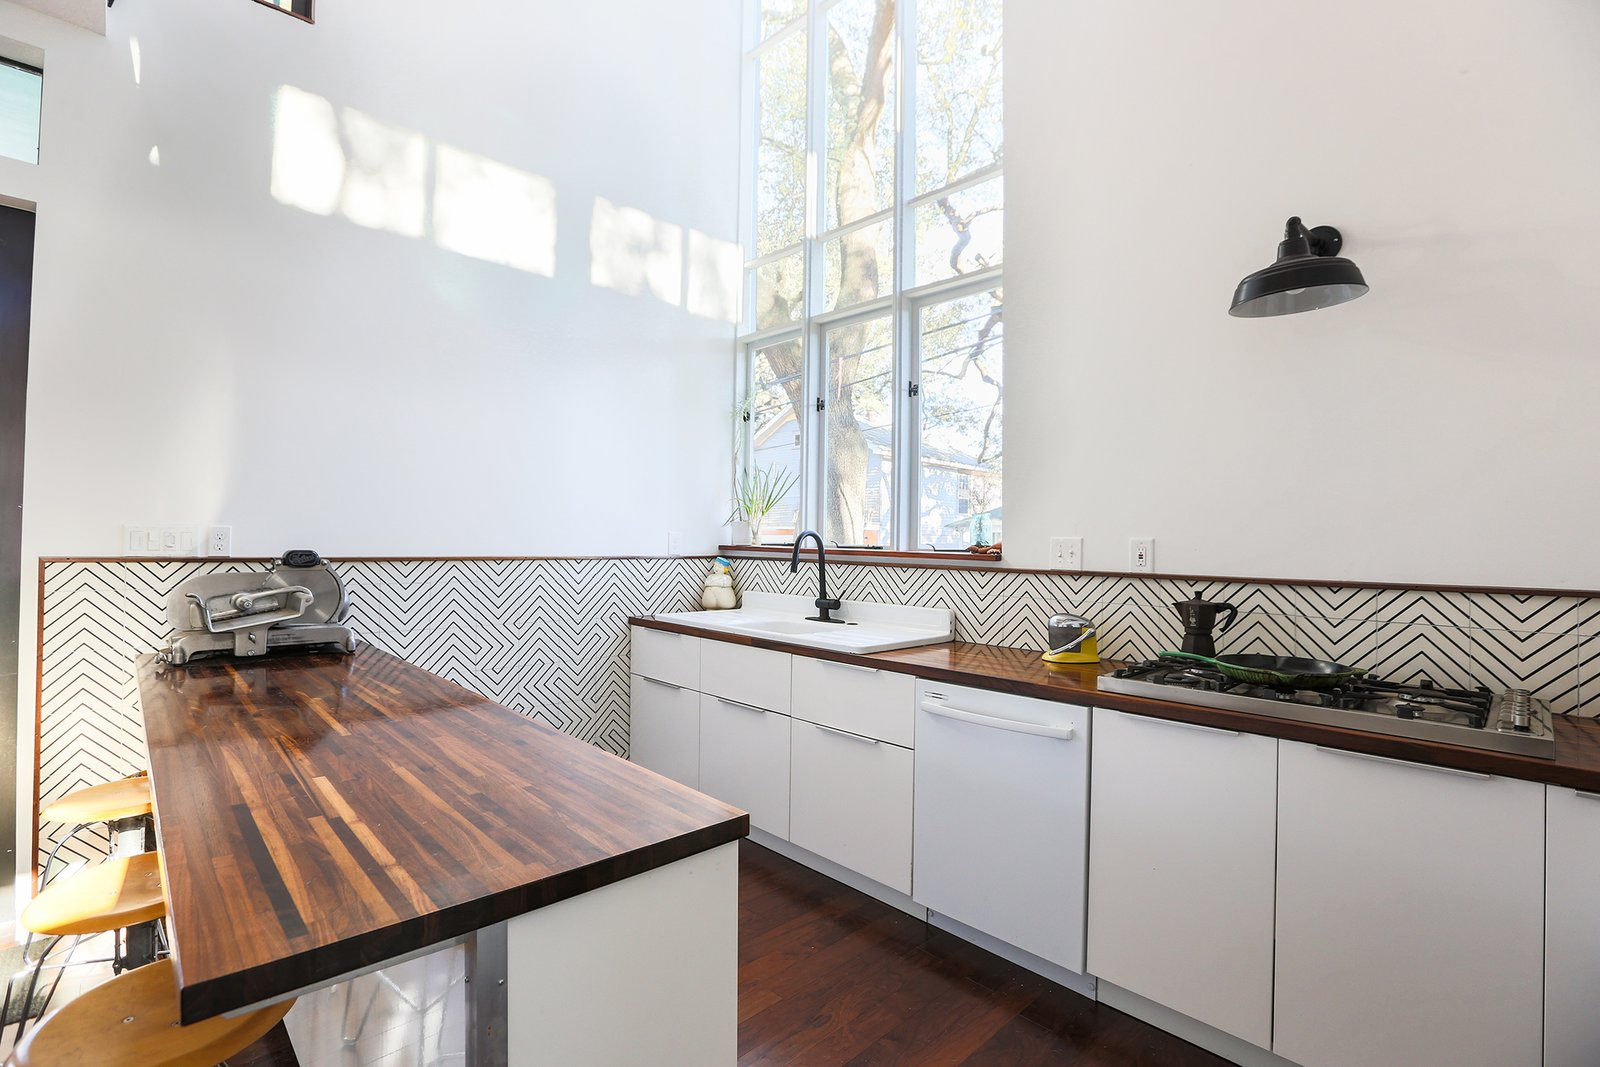 Kitchen, Wood, White, Dark Hardwood, Ceramic Tile, Wall, Drop In, and Dishwasher The light-filled kitchen space. Cle tiles are used as backsplash, Ikea cabinets and Walnut butcher-block countertops make the working surfaces of the space.   Best Kitchen Ceramic Tile Wall Photos from Dorgenois